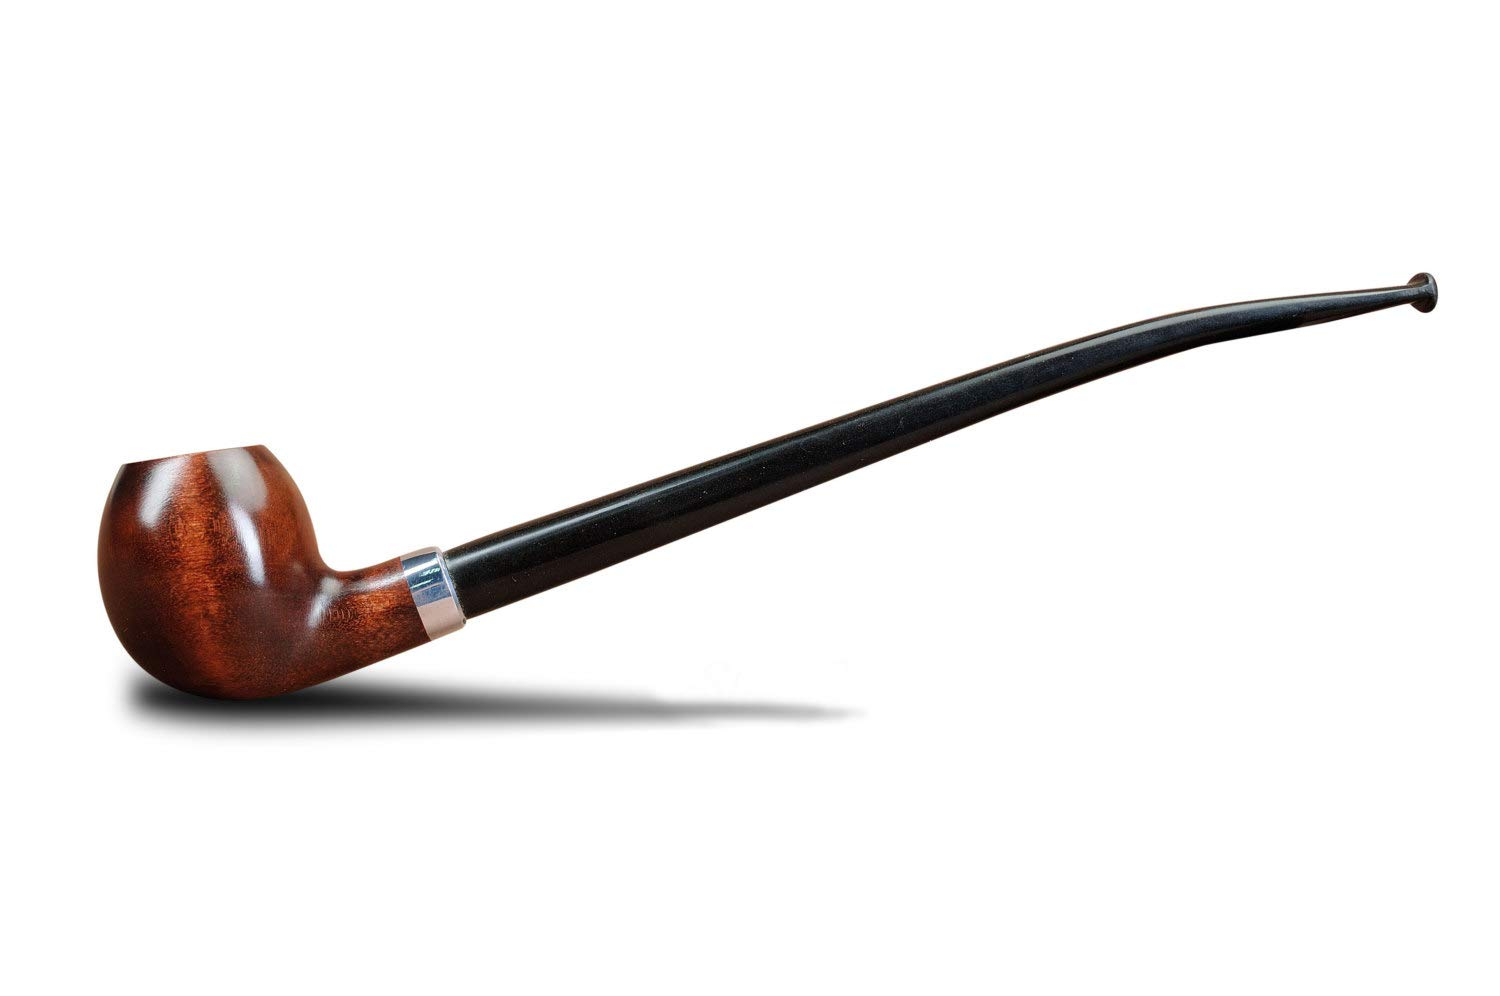 KAFpipeWorkshop Churchwarden pipe handmade from pear wood with long ebonite stem 9.5 inch + pipe pouch